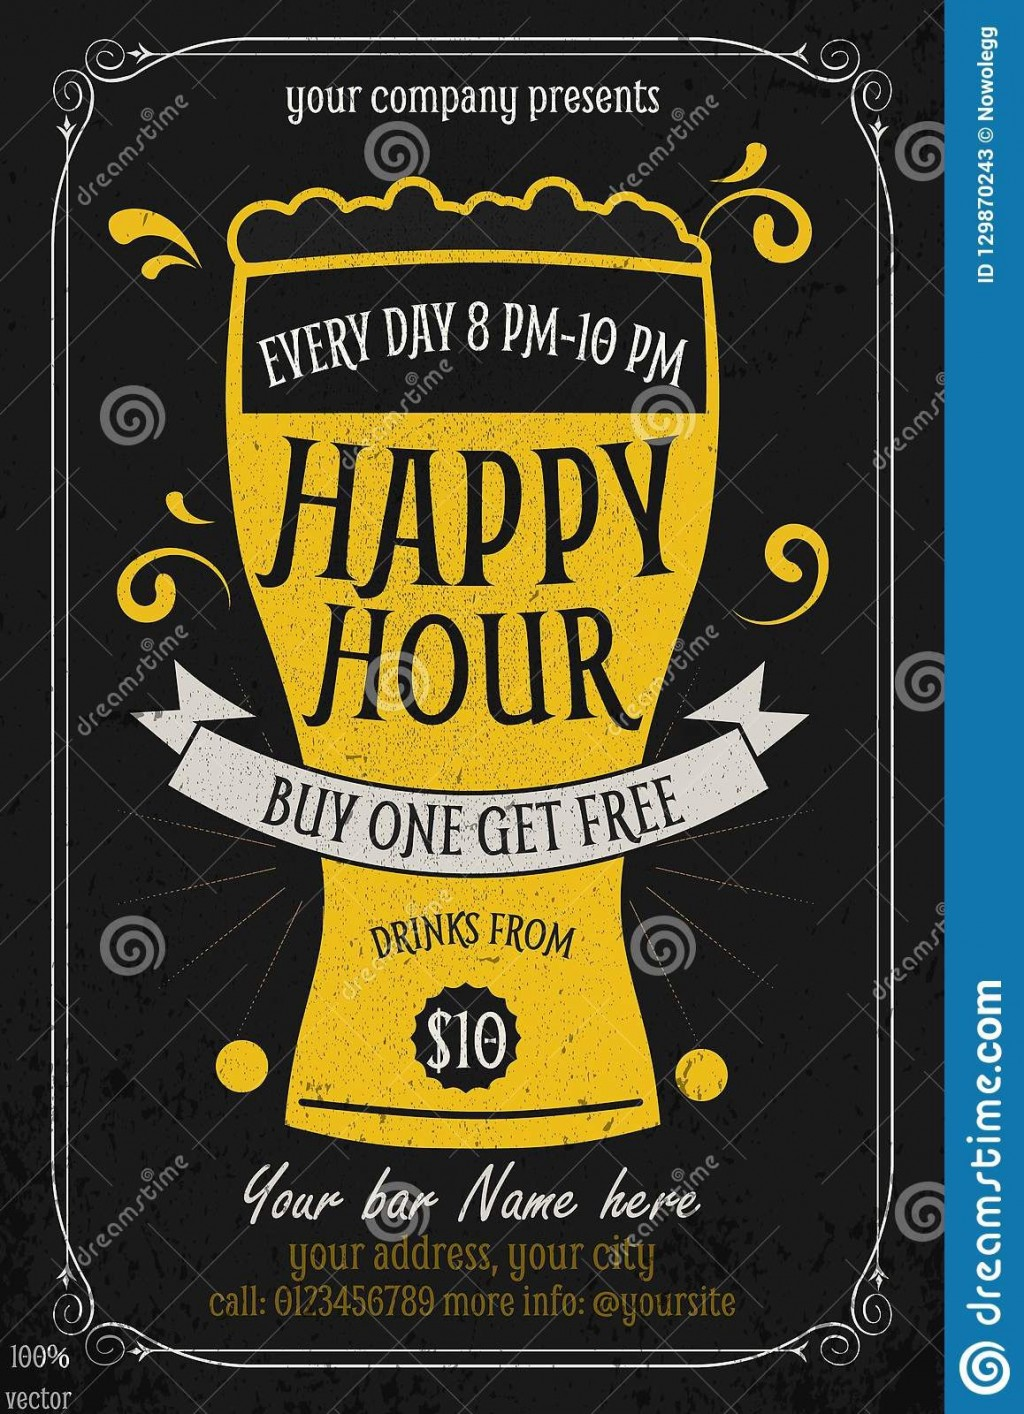 006 Unforgettable Happy Hour Invitation Template Idea  Templates Free Word FarewellLarge